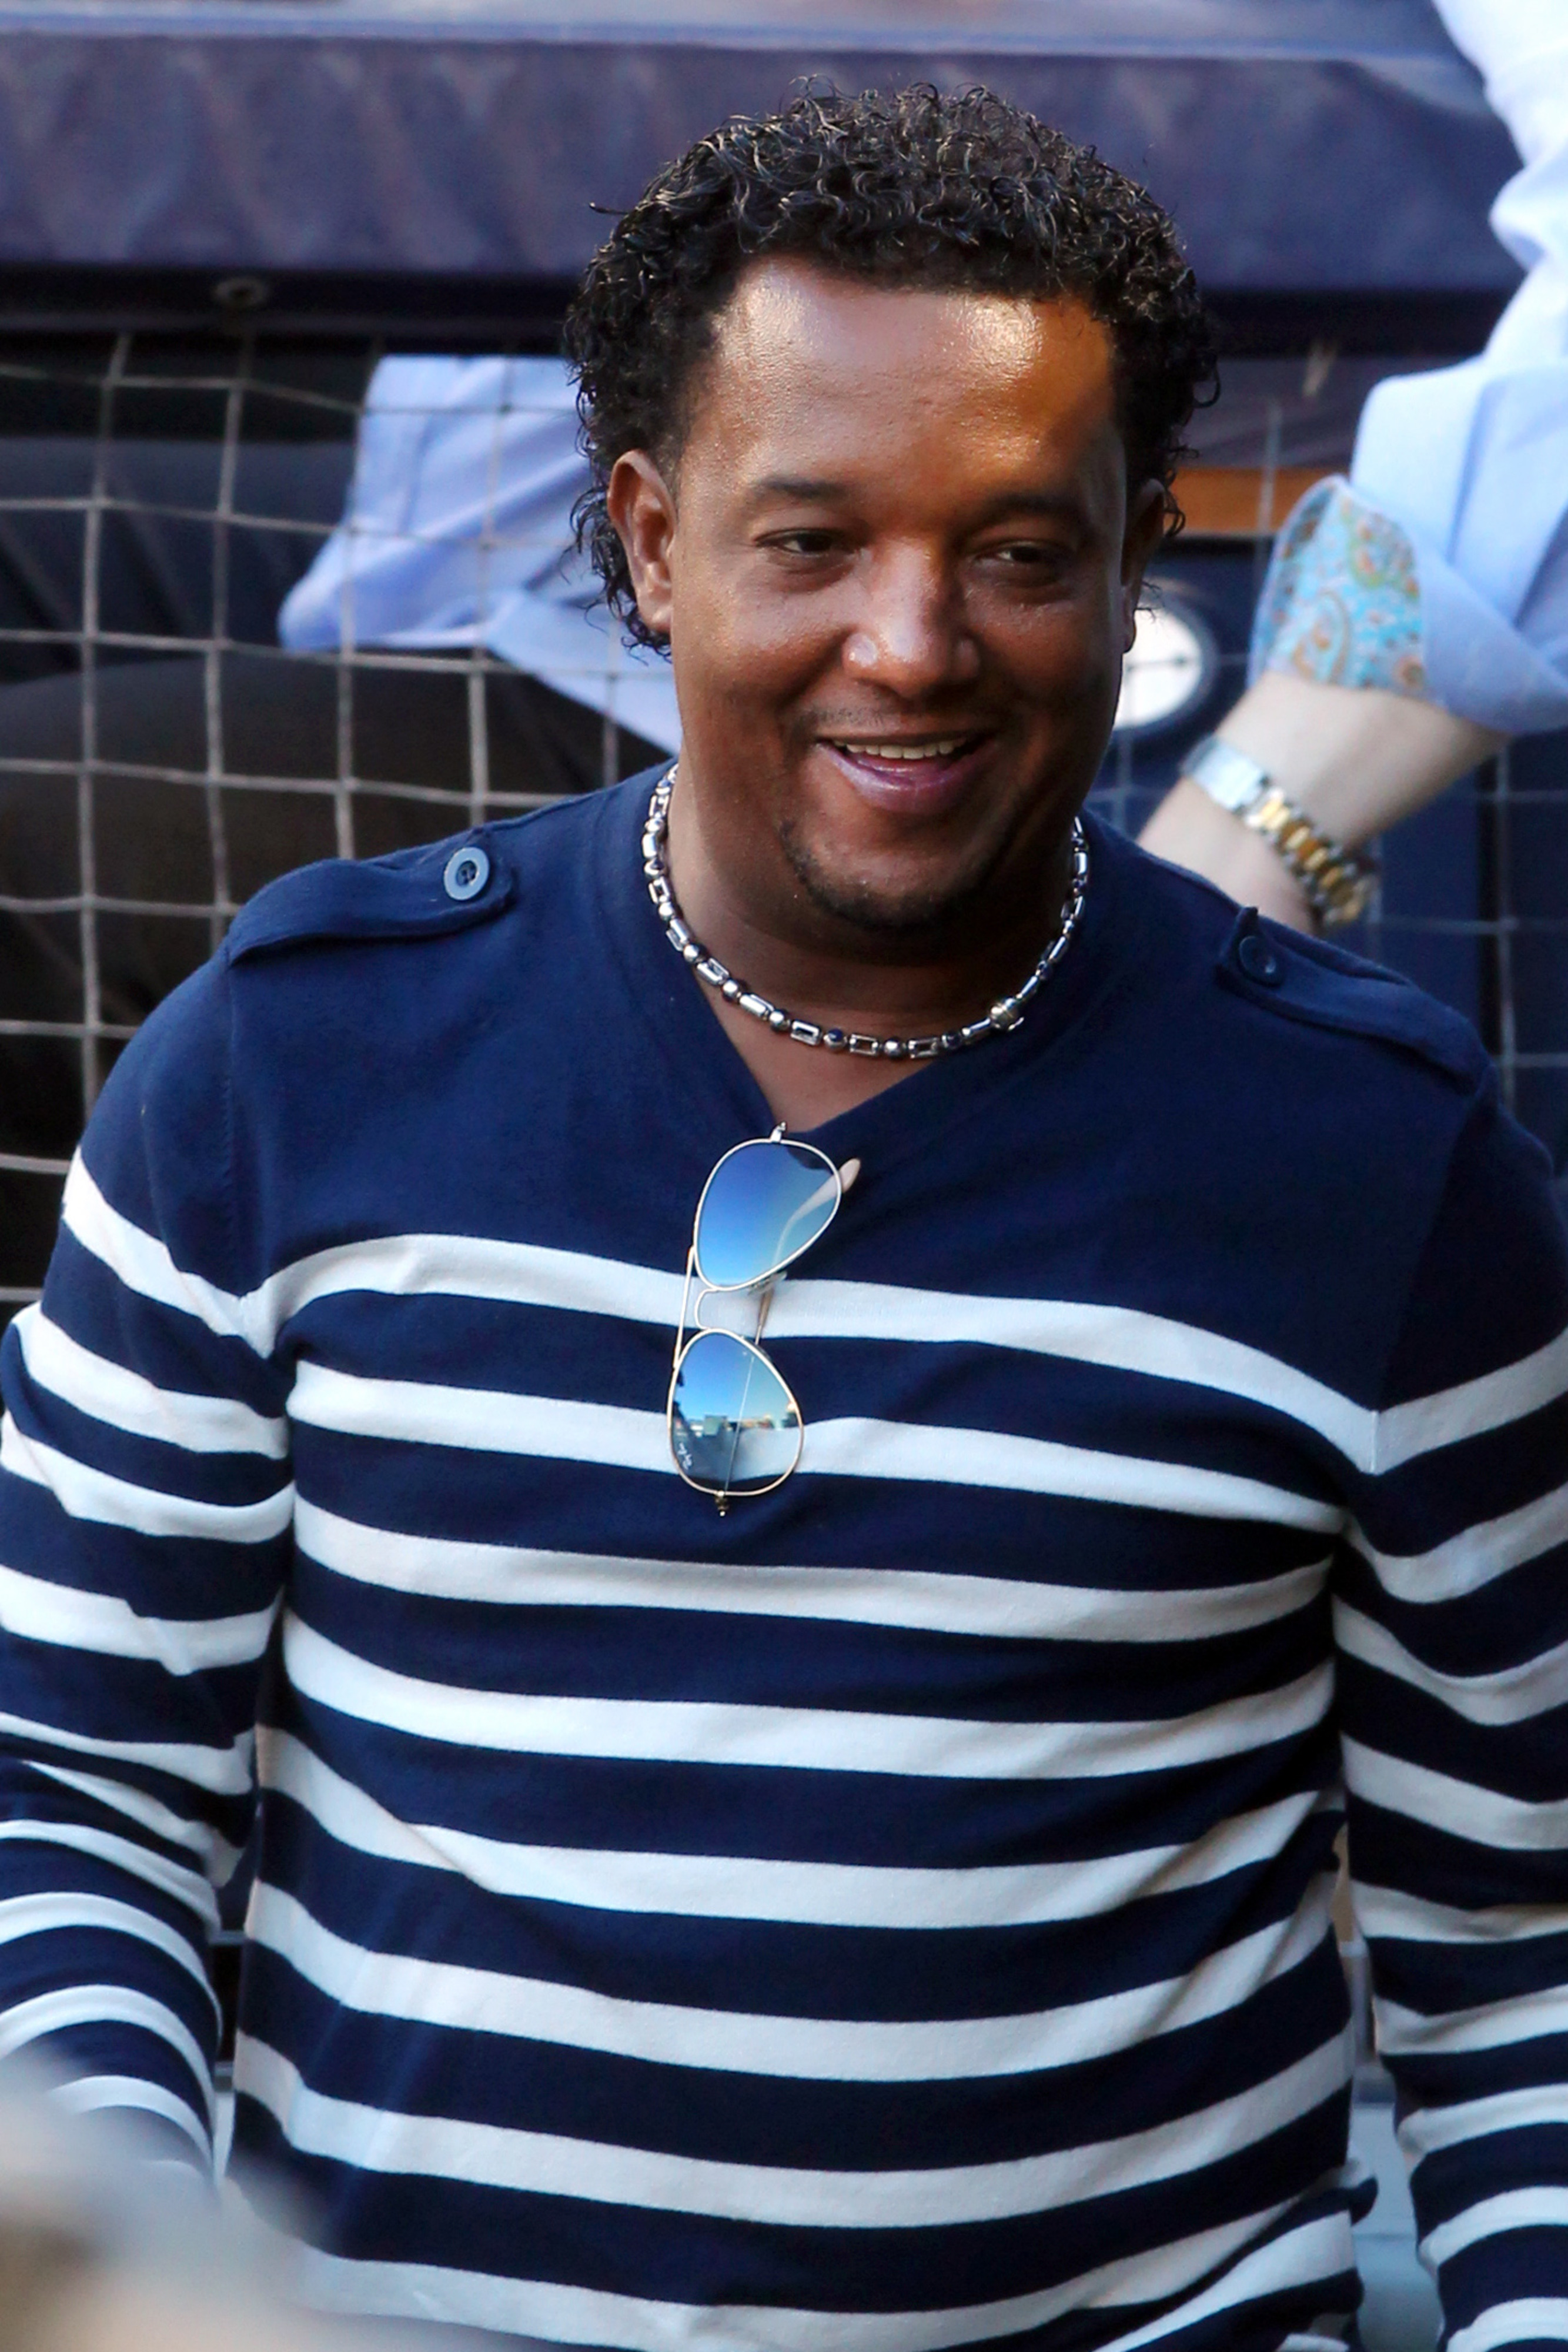 Pedro Martinez will join TBS as an MLB post-season studio analyst, according to report